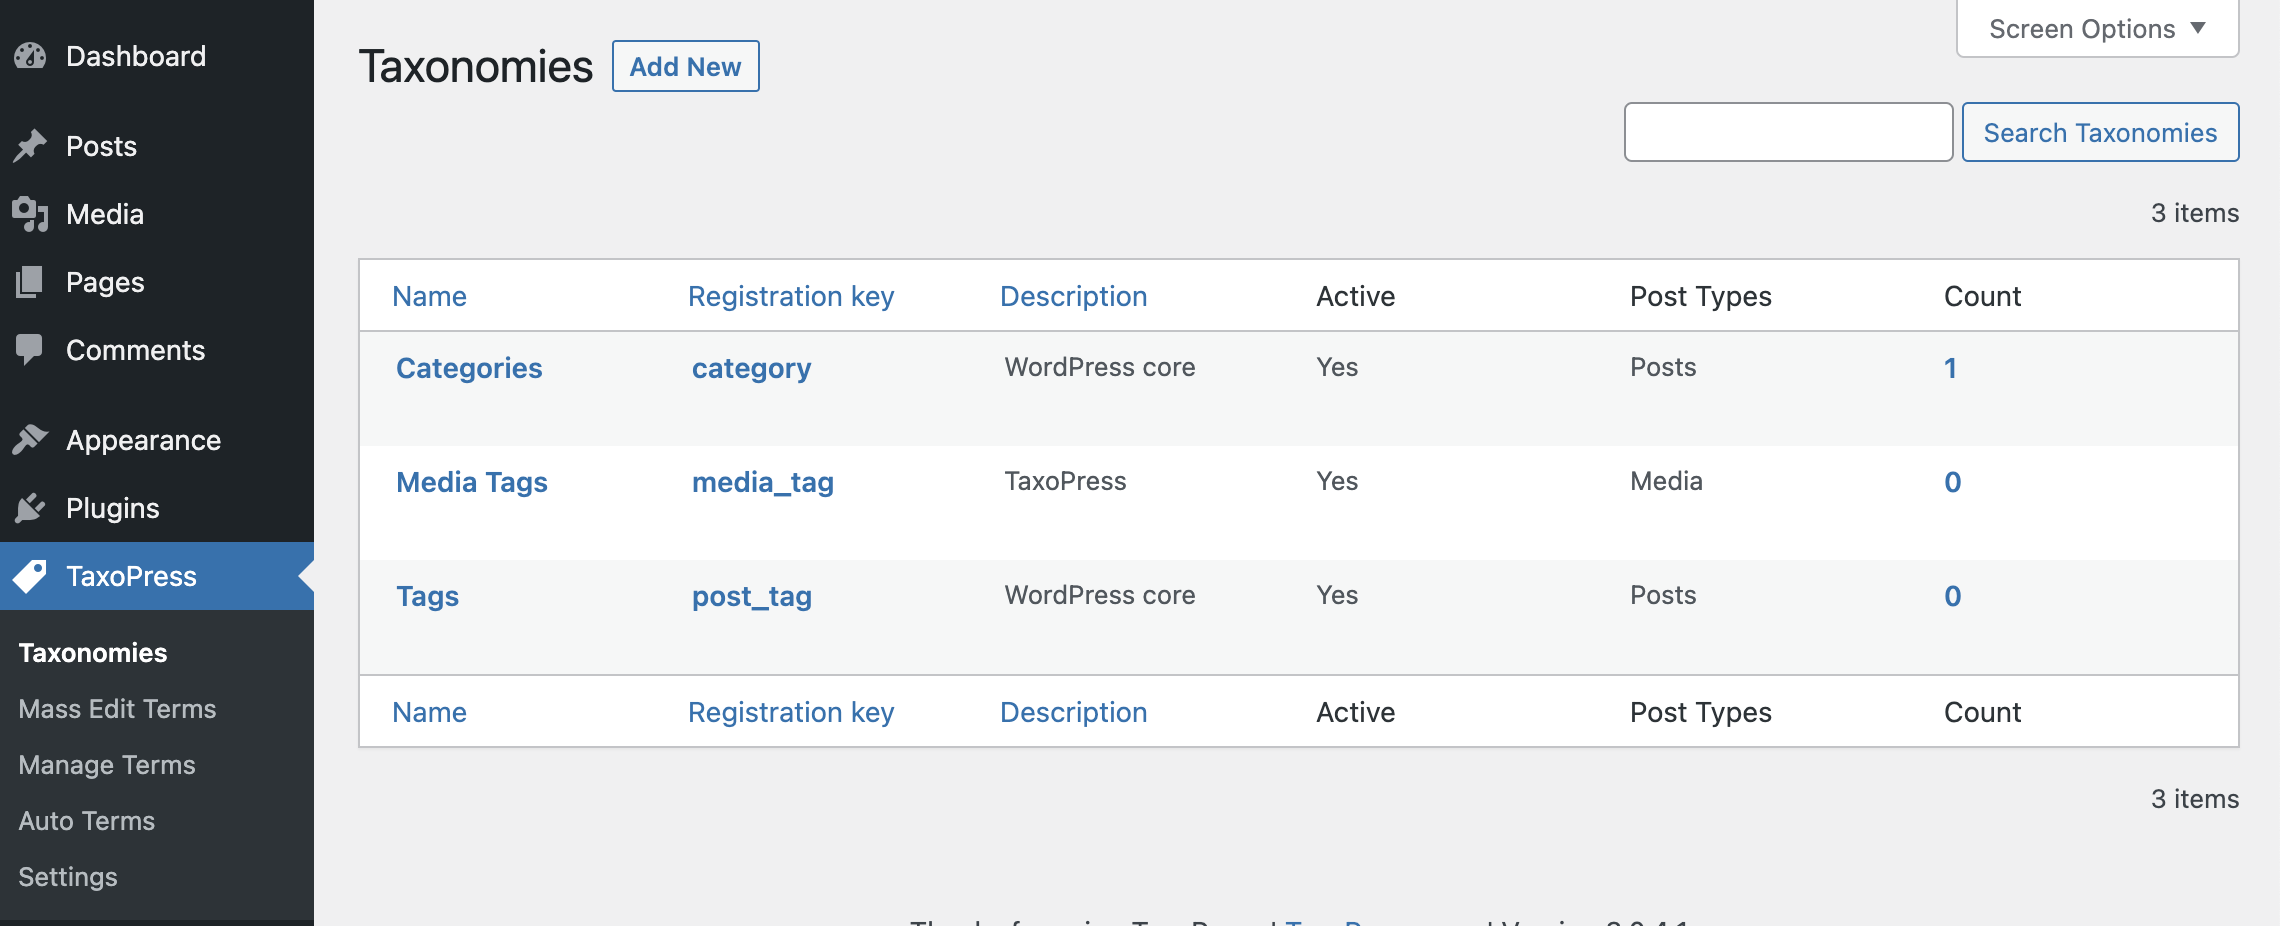 TaxoPress 3.0.4 Allows You to Create and Manage Taxonomies